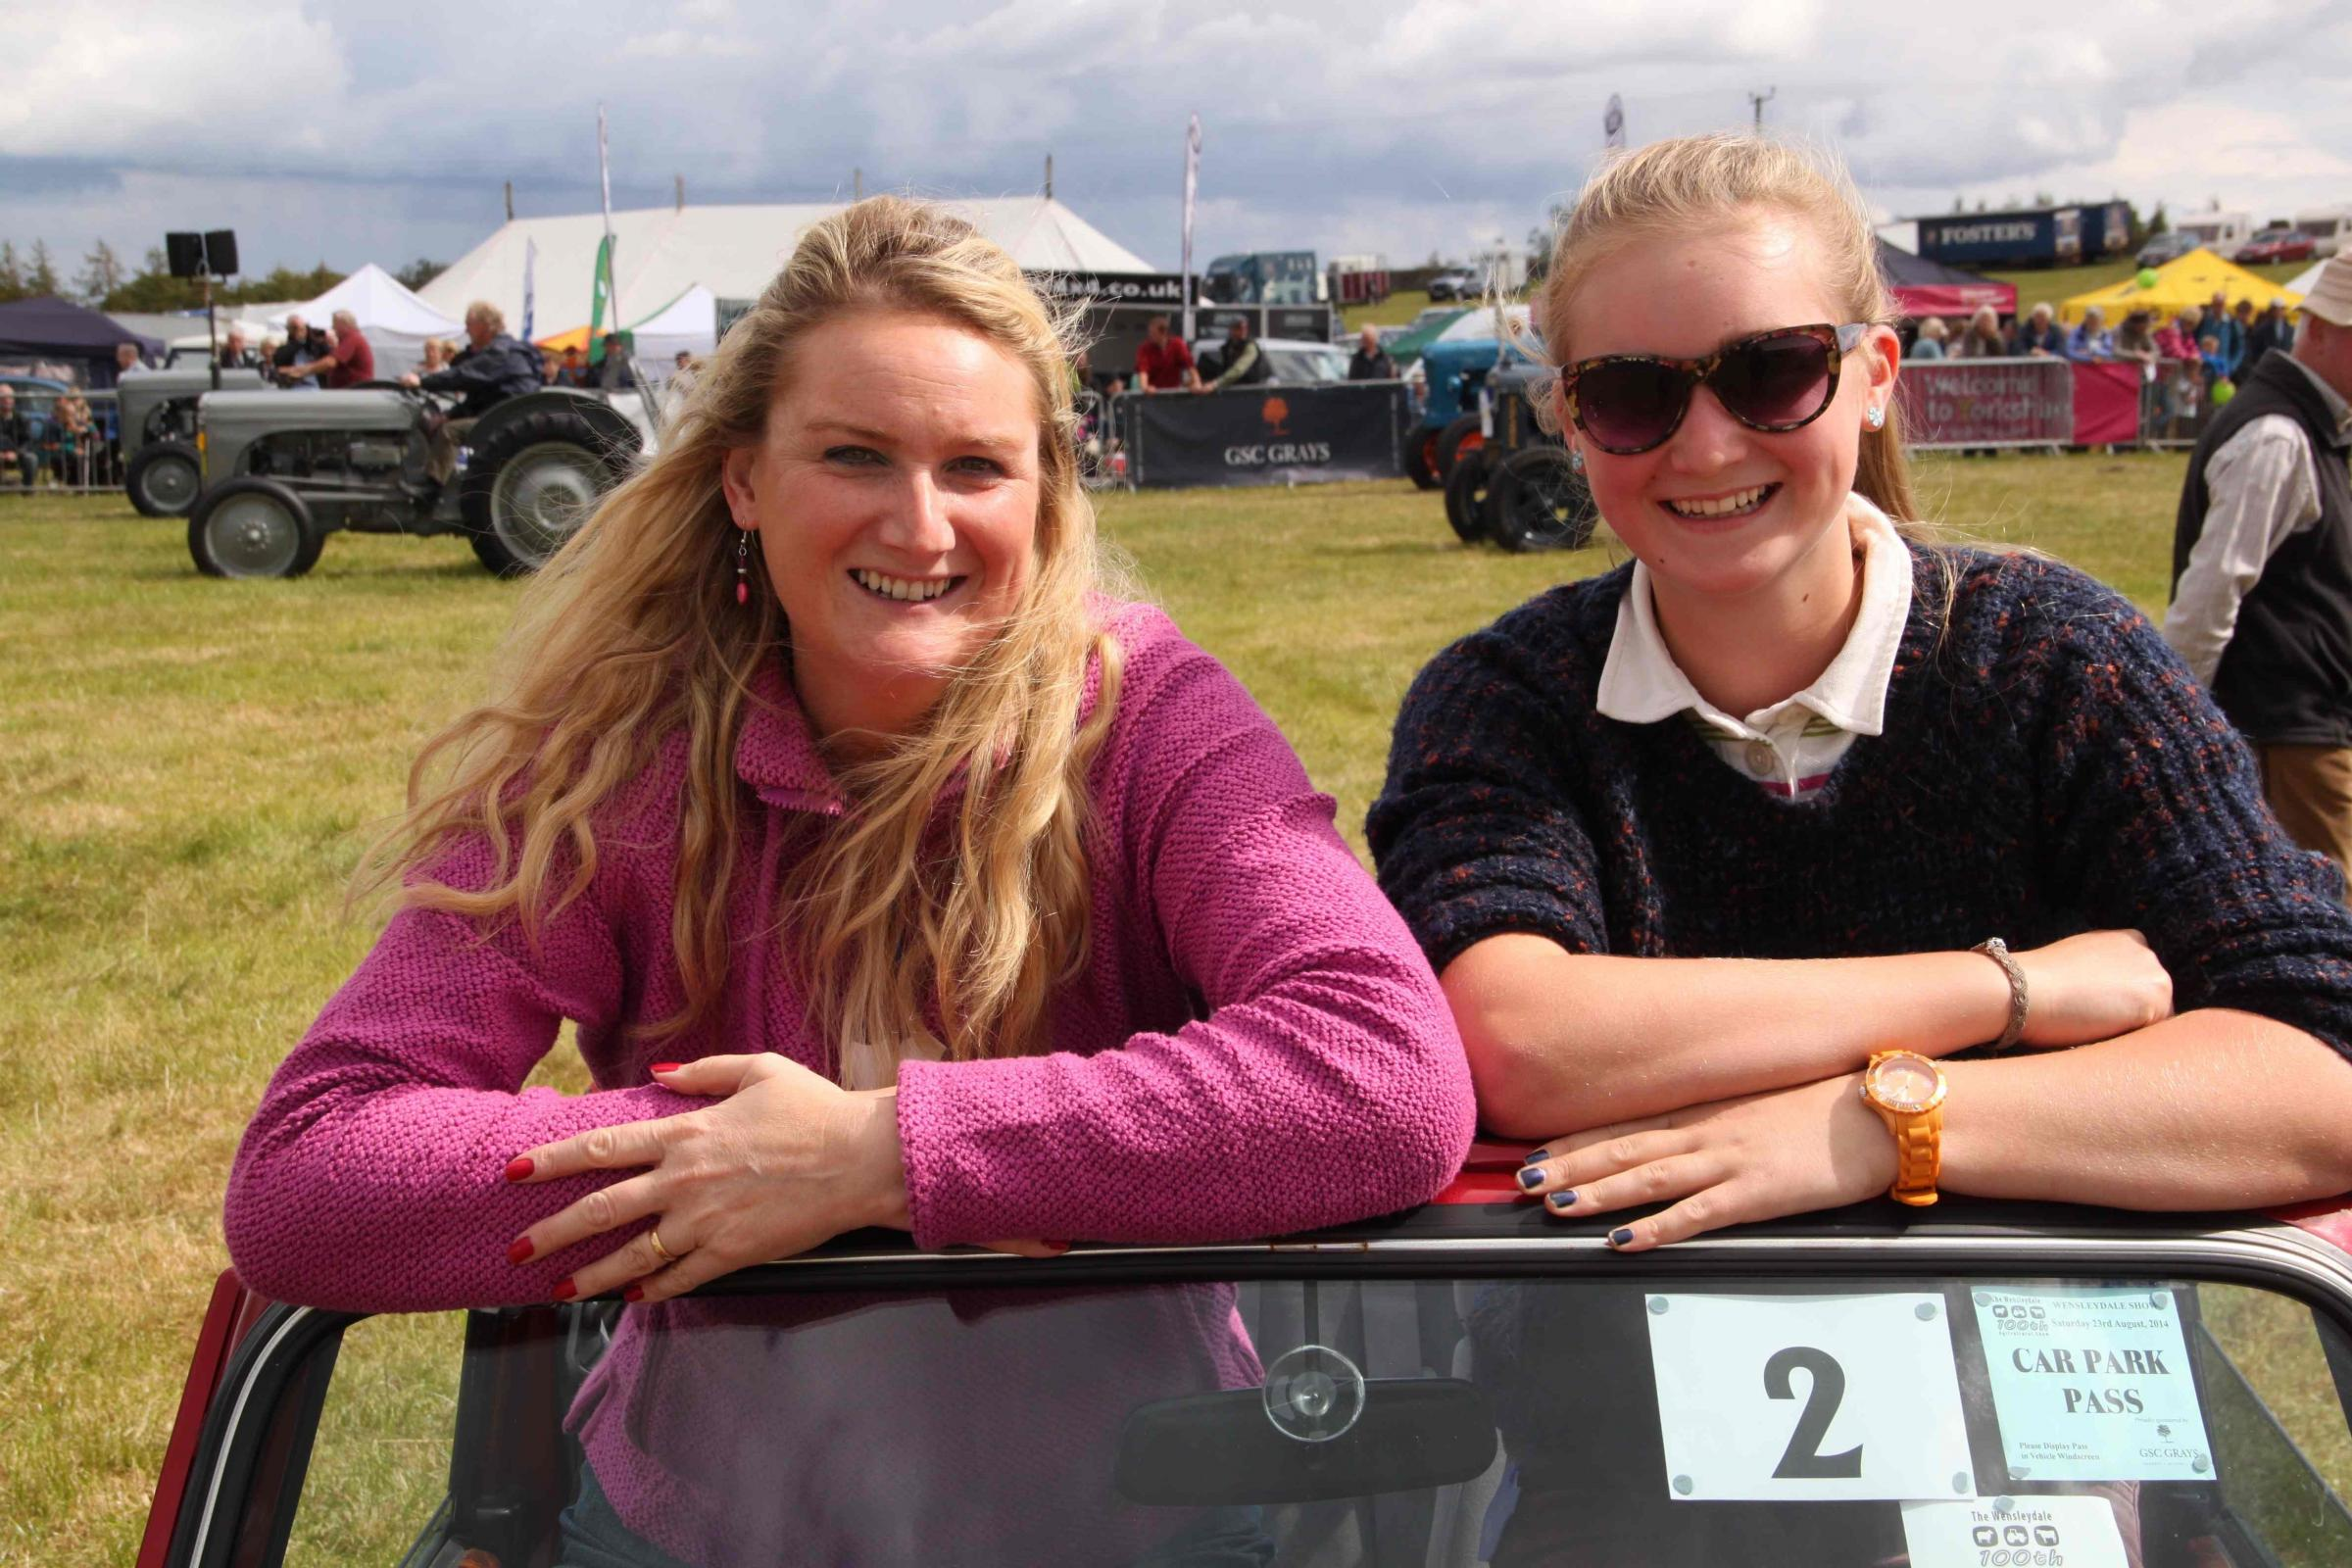 Drama unfolds in main ring at 100th Wensleydale Show